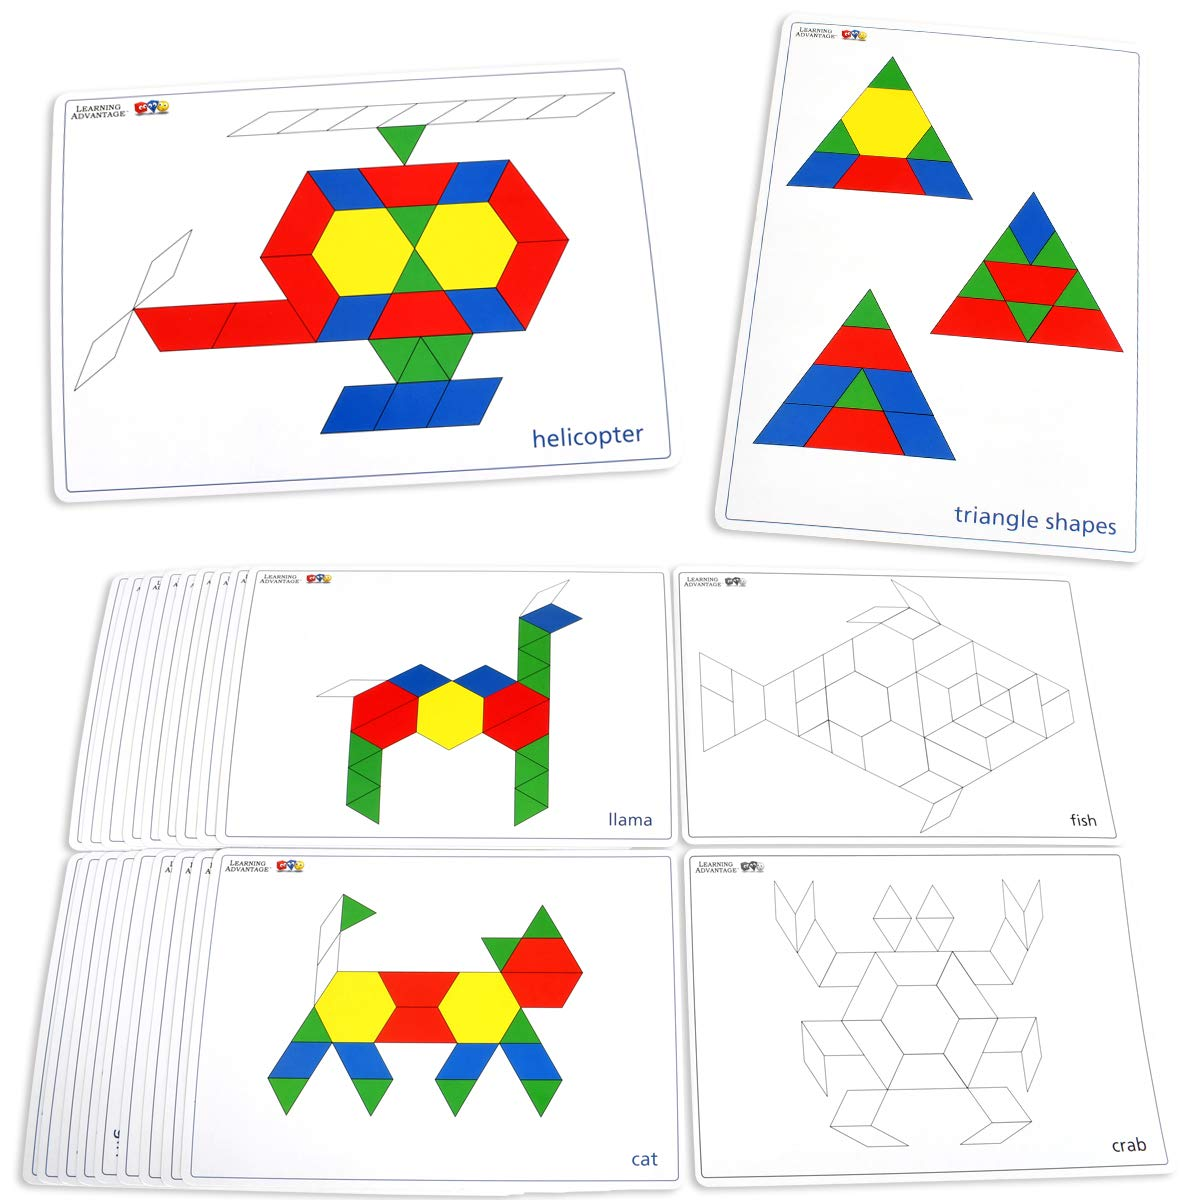 Learning Advantage Pattern Block Cards - Set of 20 Double-Sided Cards - Early Geometry for Kids - Teach Creativity, Sequencing and Patterning by Learning Advantage